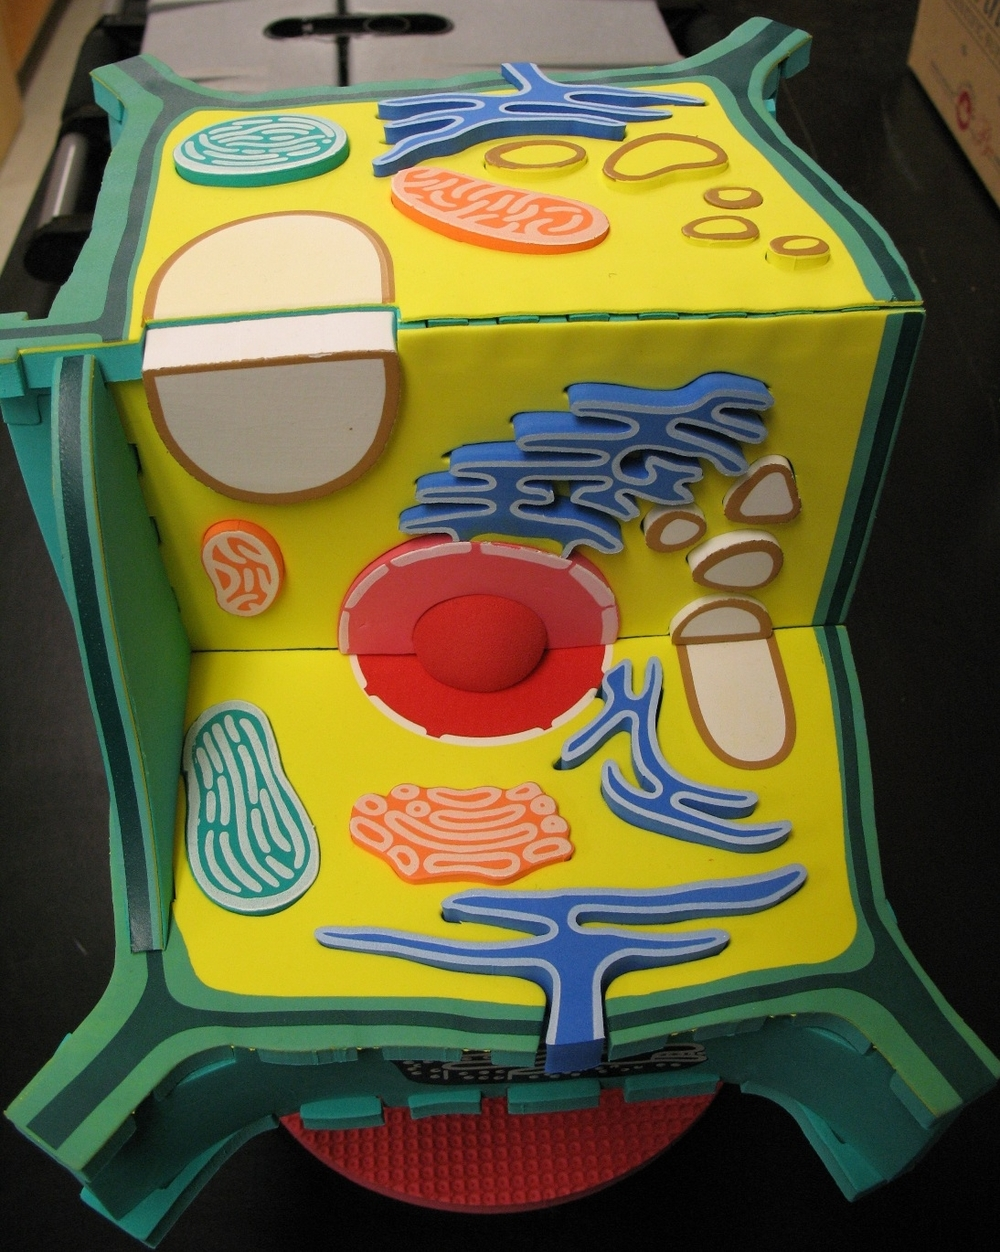 3d plant cell model project materials - Praxis Plant Cell Model